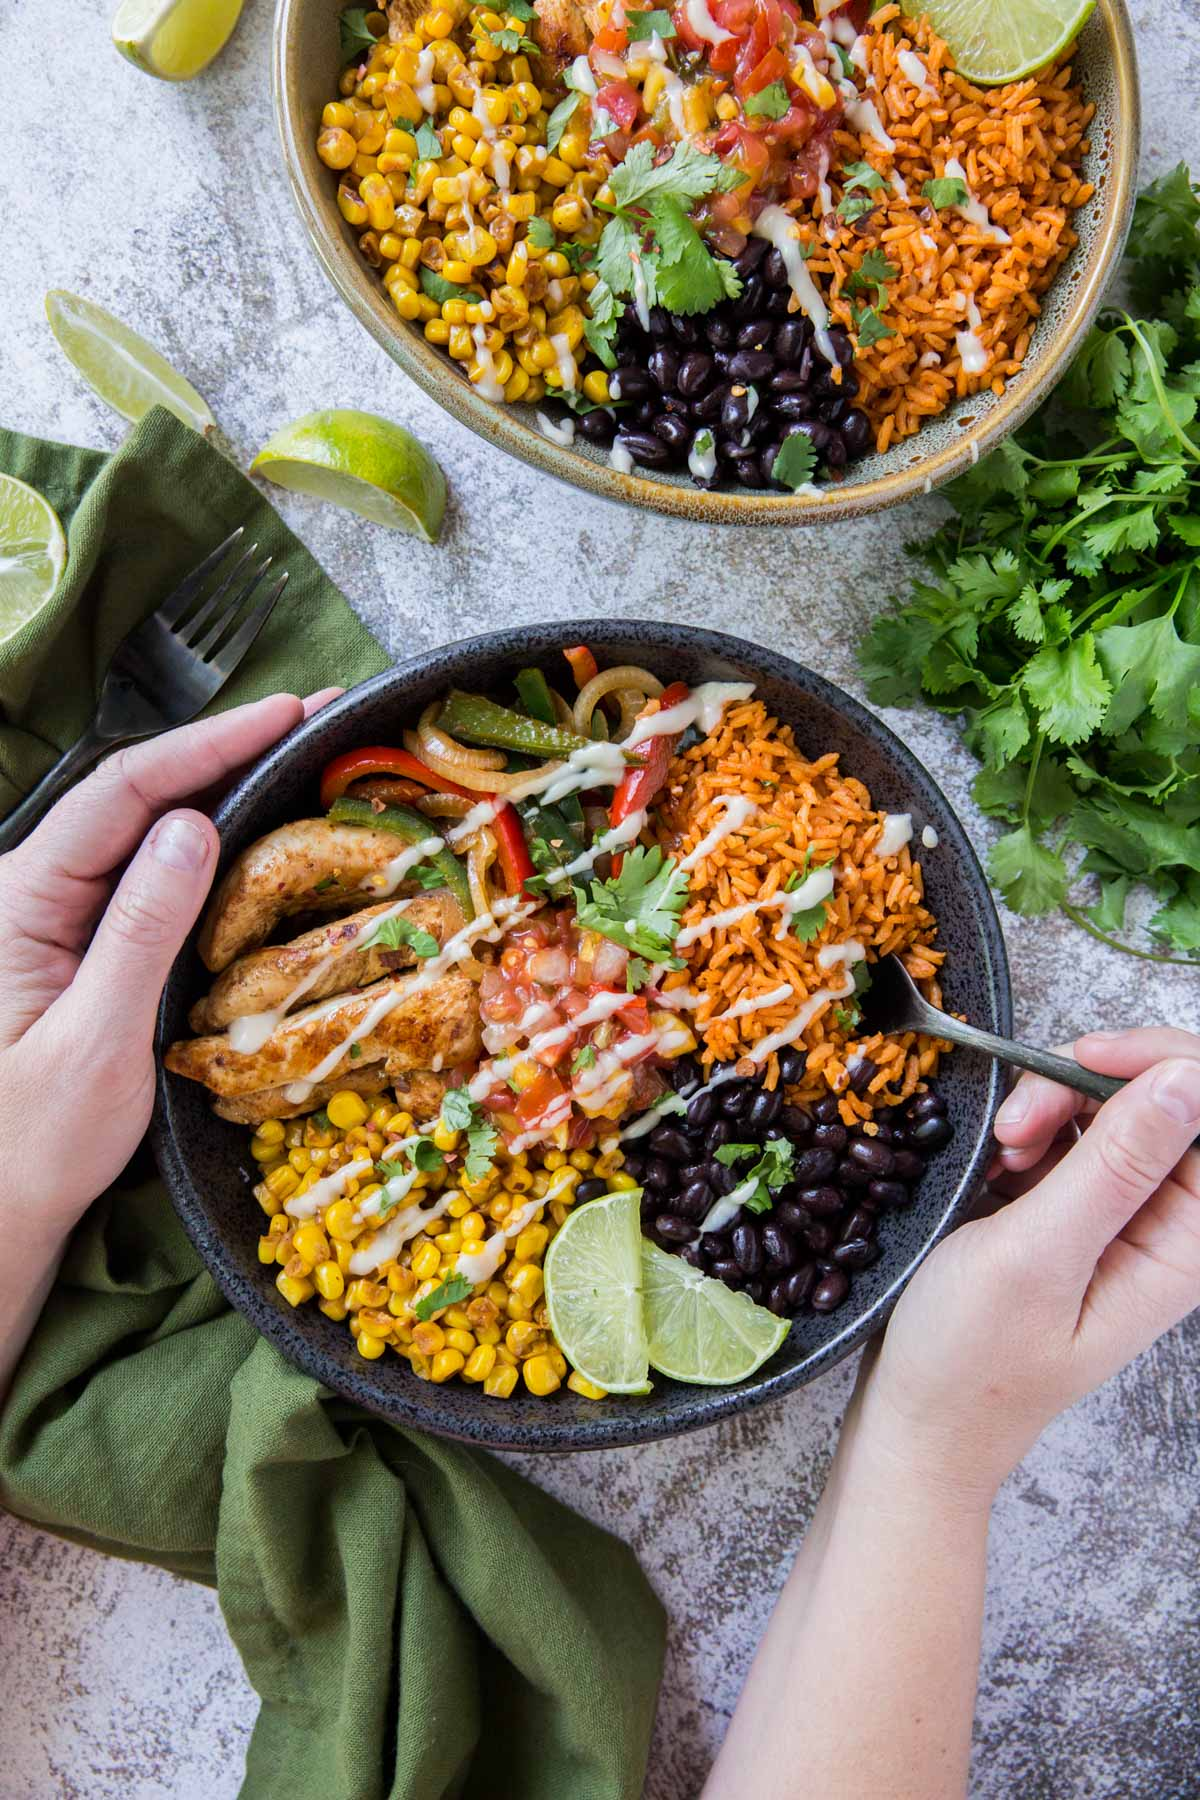 hands holding a black bowl with fajita chicken, rice, limes, beans, and peppers